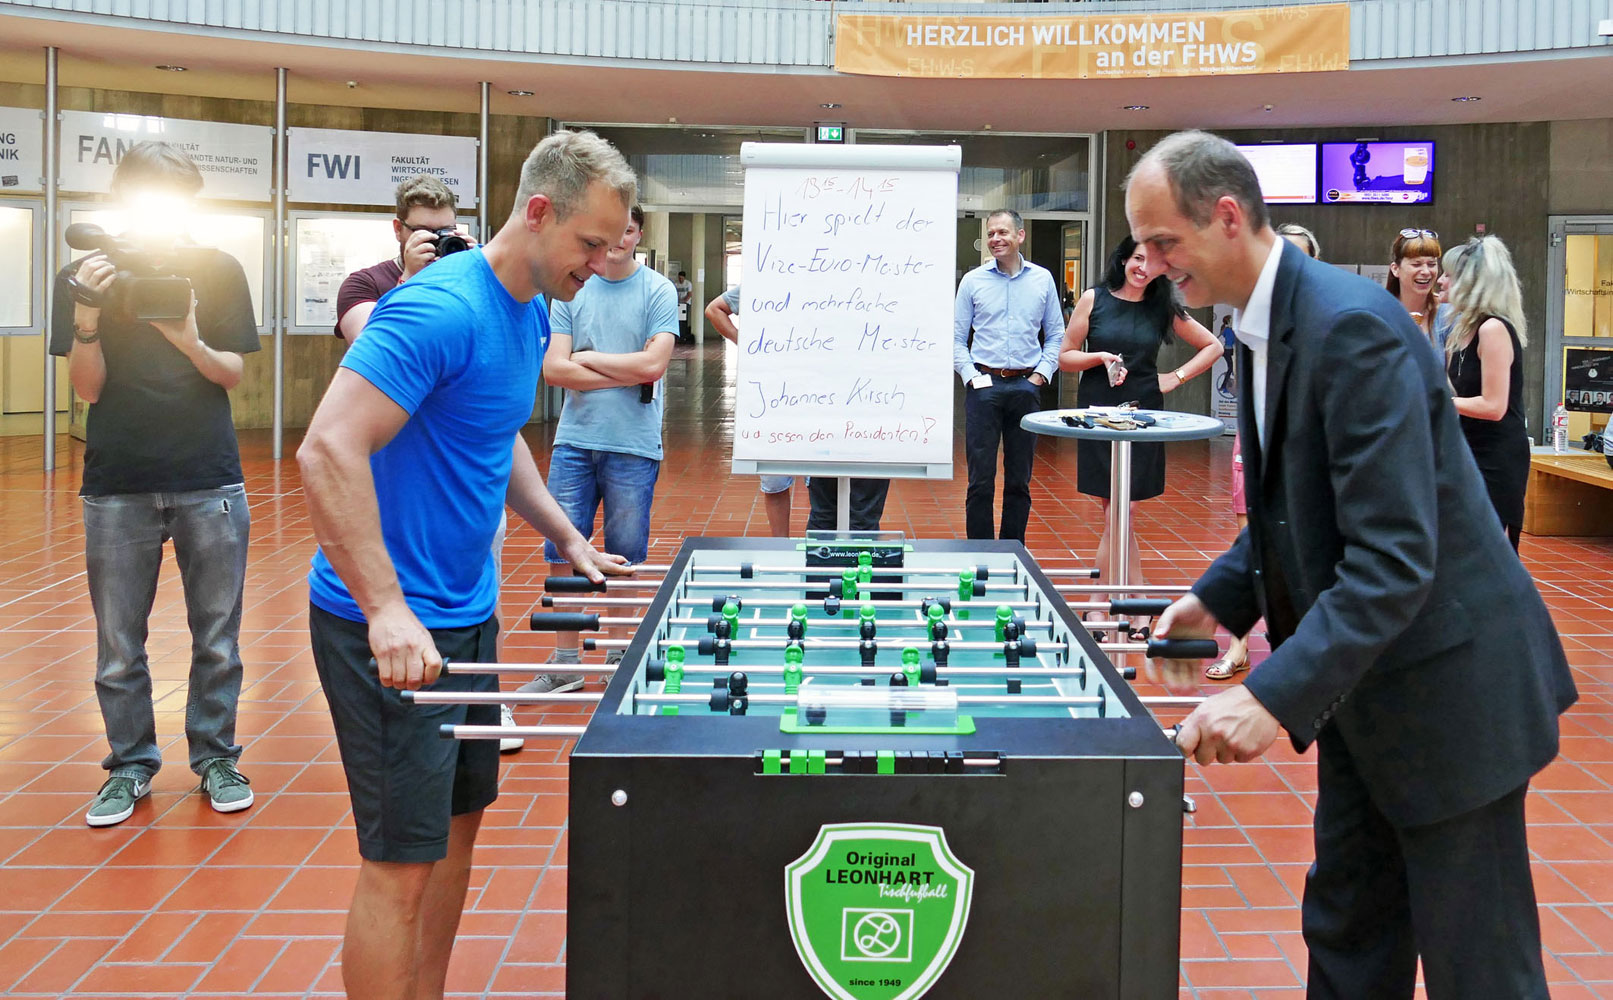 Johannes Kirsch (left), former Vice European Champion in table football, competed against the President of the FHWS, Professor Dr. Robert Grebner.